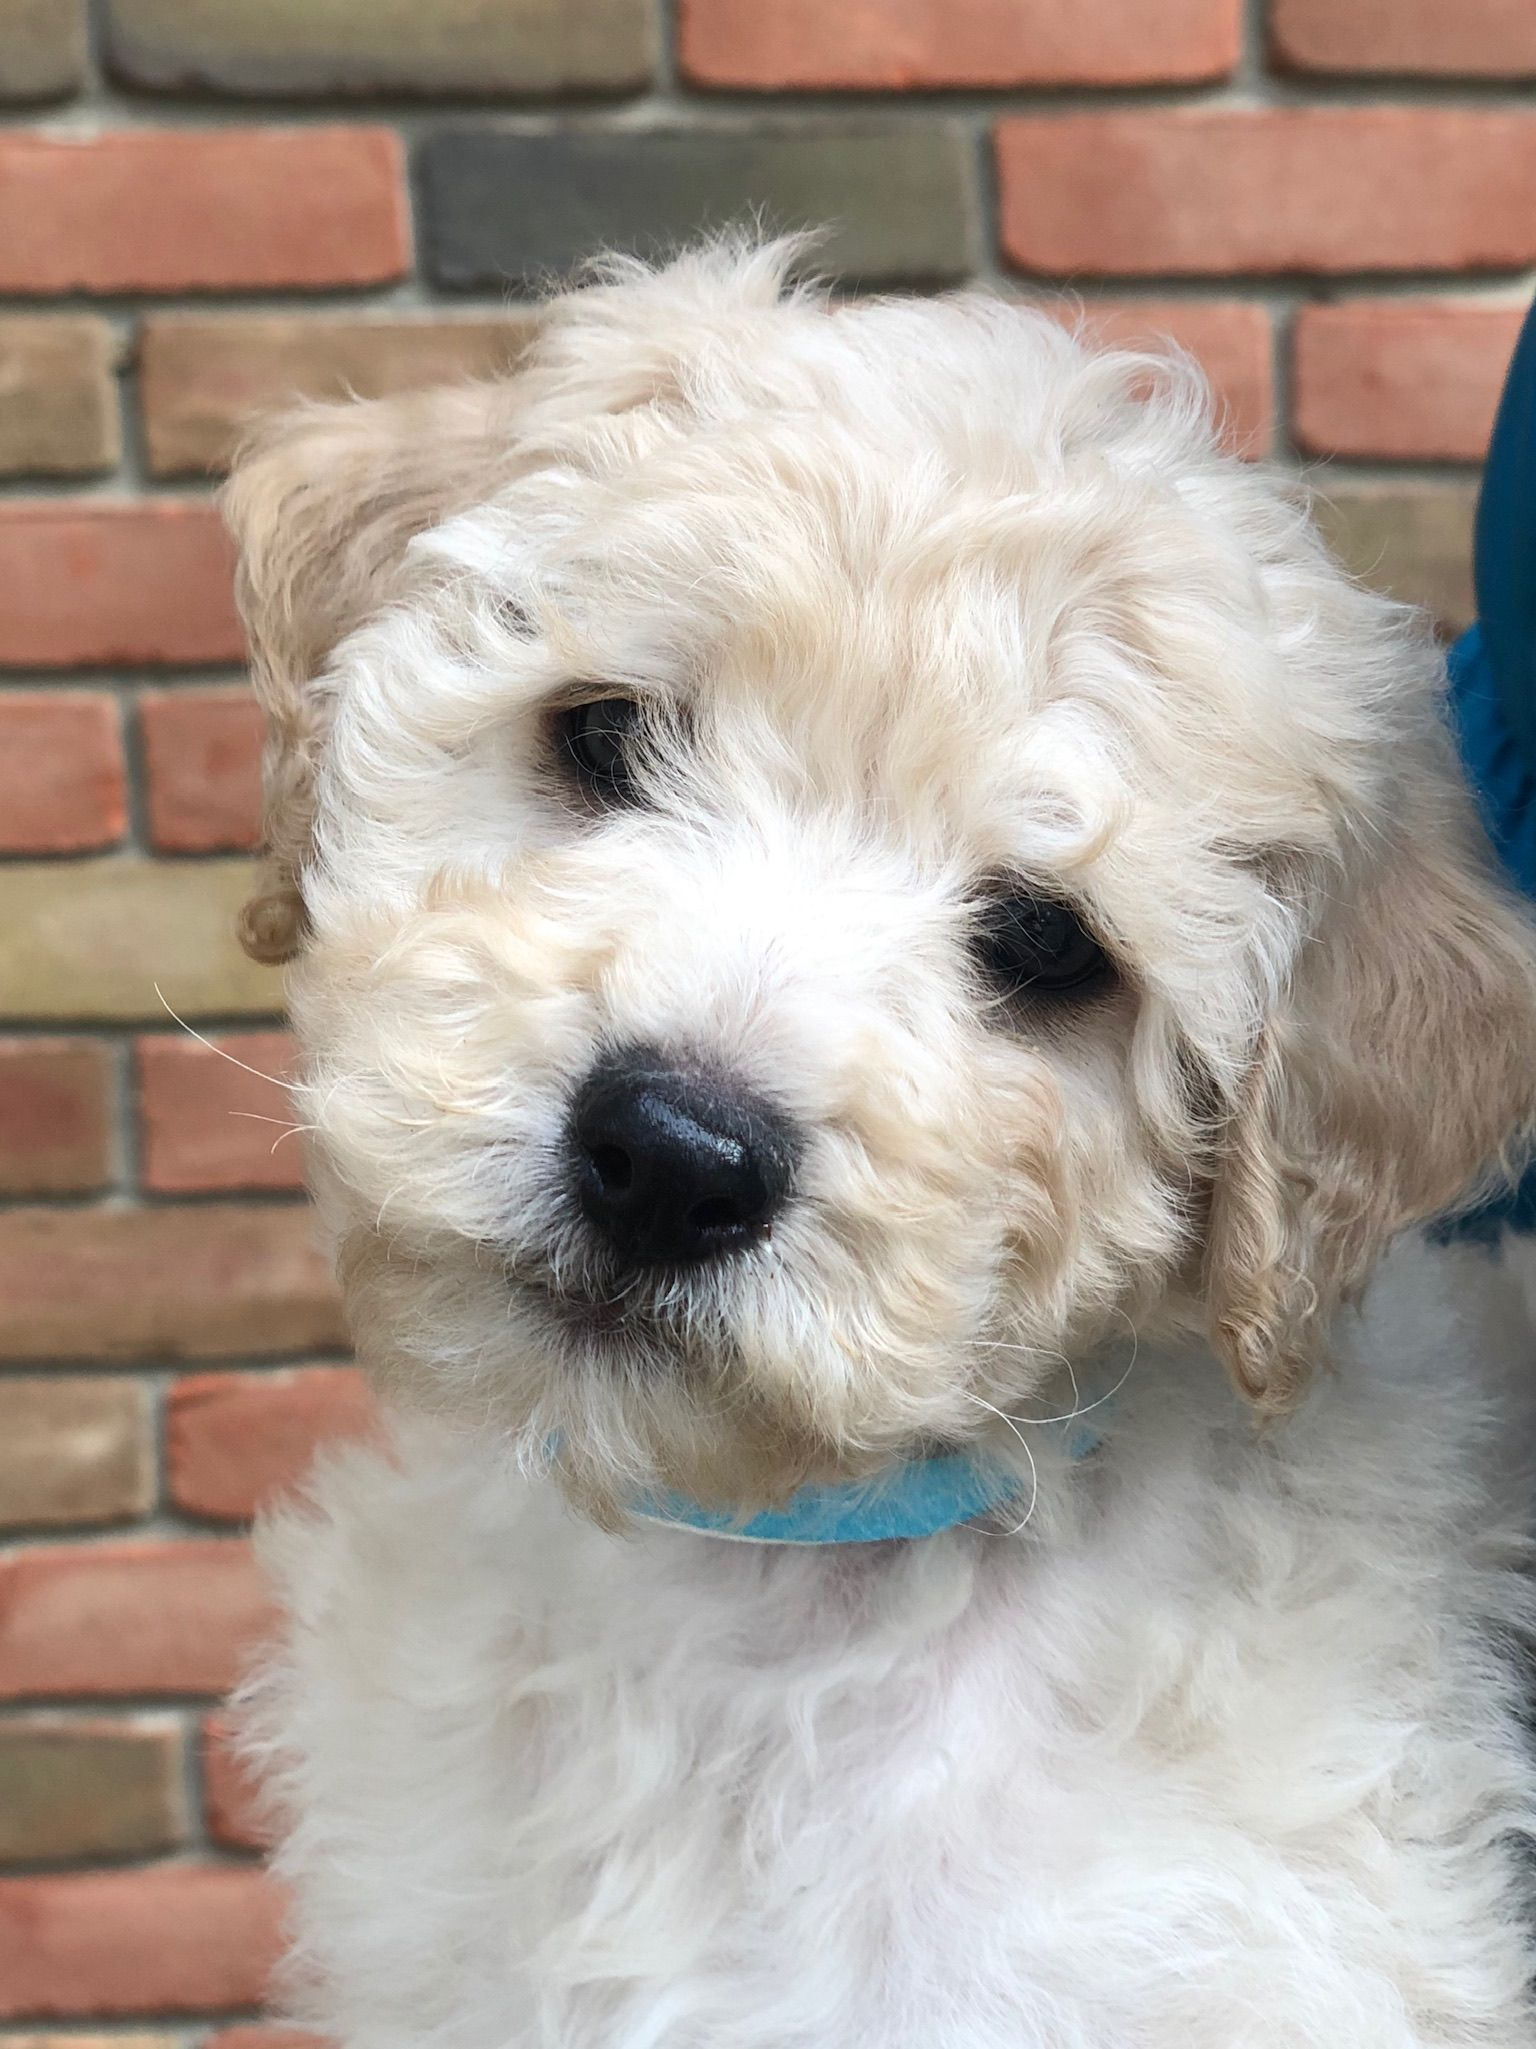 Cockapoolove Cockapoo Pups Are Sweet And Loving Companions That Are Sure To Brighten Your Snowy Winterdays In 2020 Cockapoo Puppies Cockapoo Cockapoo Breeders